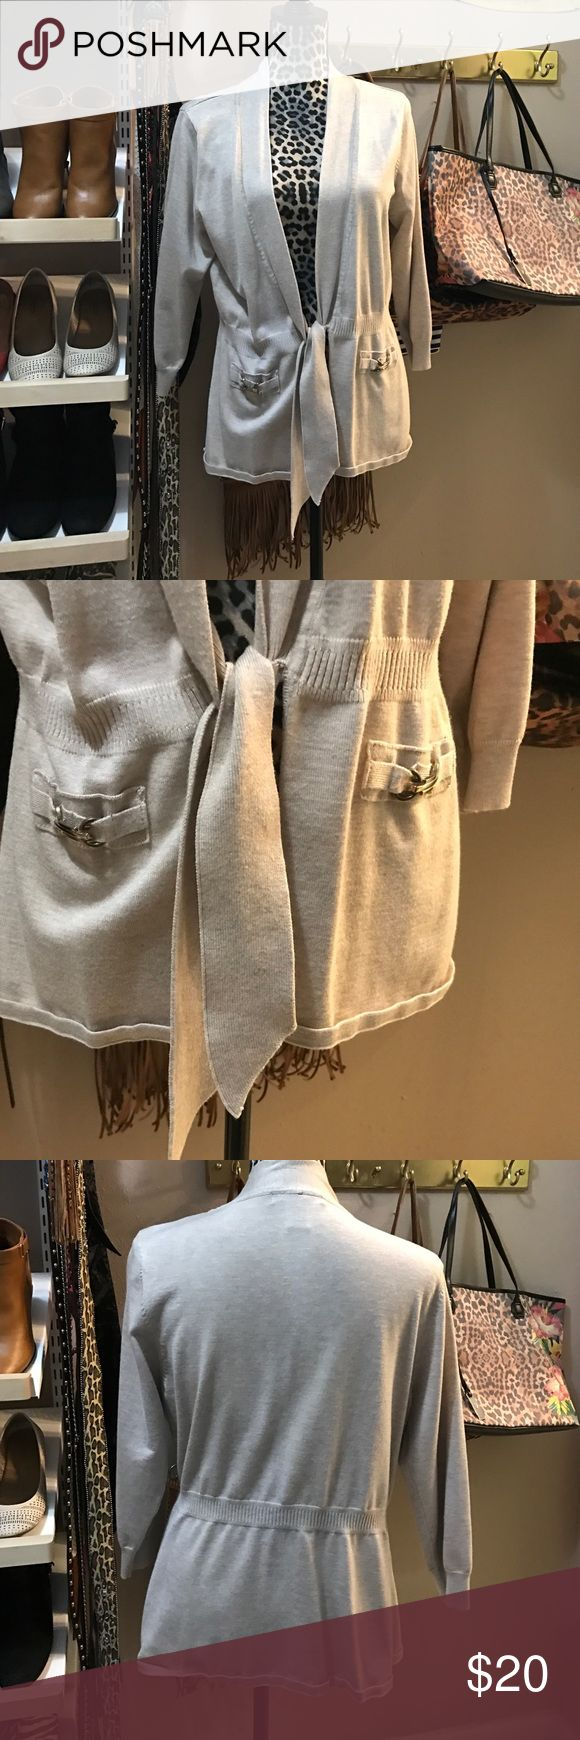 Beige tie front cardigan. Like new worn a few times. Beige cardigan that ties in the front with two pocket and gold hardware. Been in storage so needs a good iron! Grace Elements Sweaters Cardigans